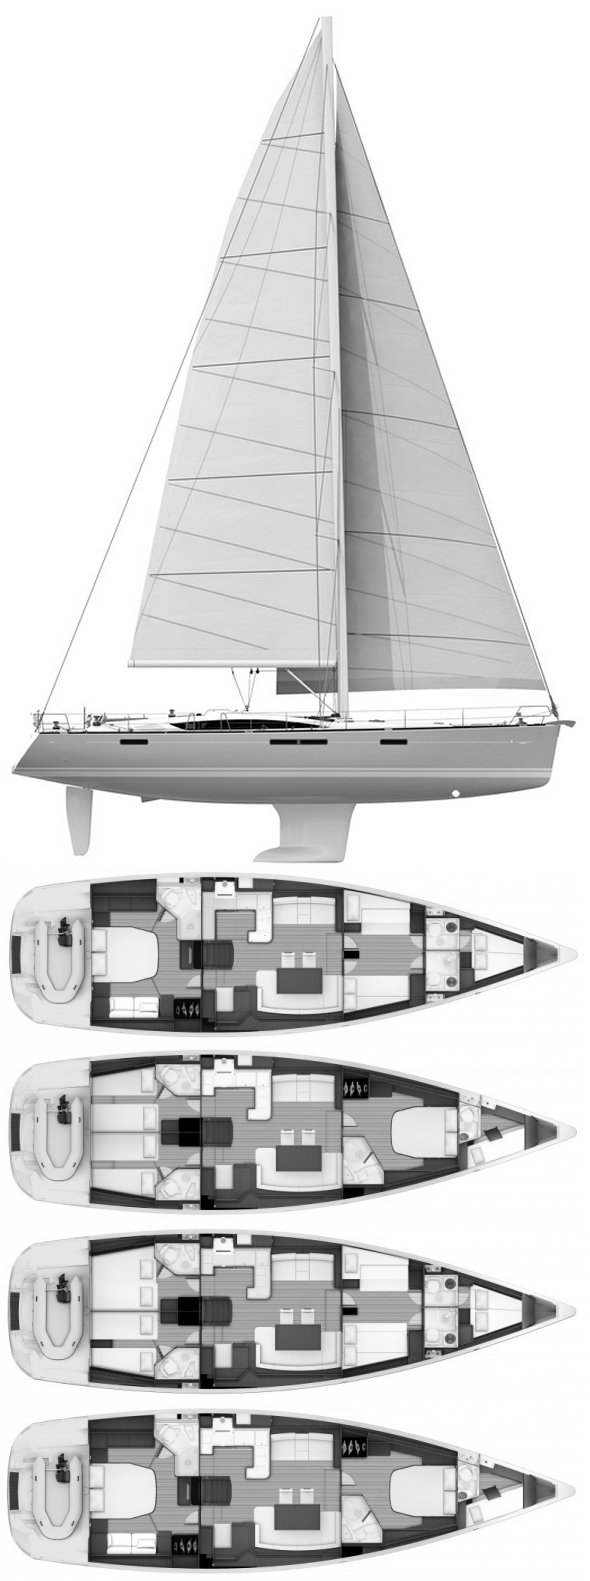 Jeanneau 57 drawing on sailboatdata.com